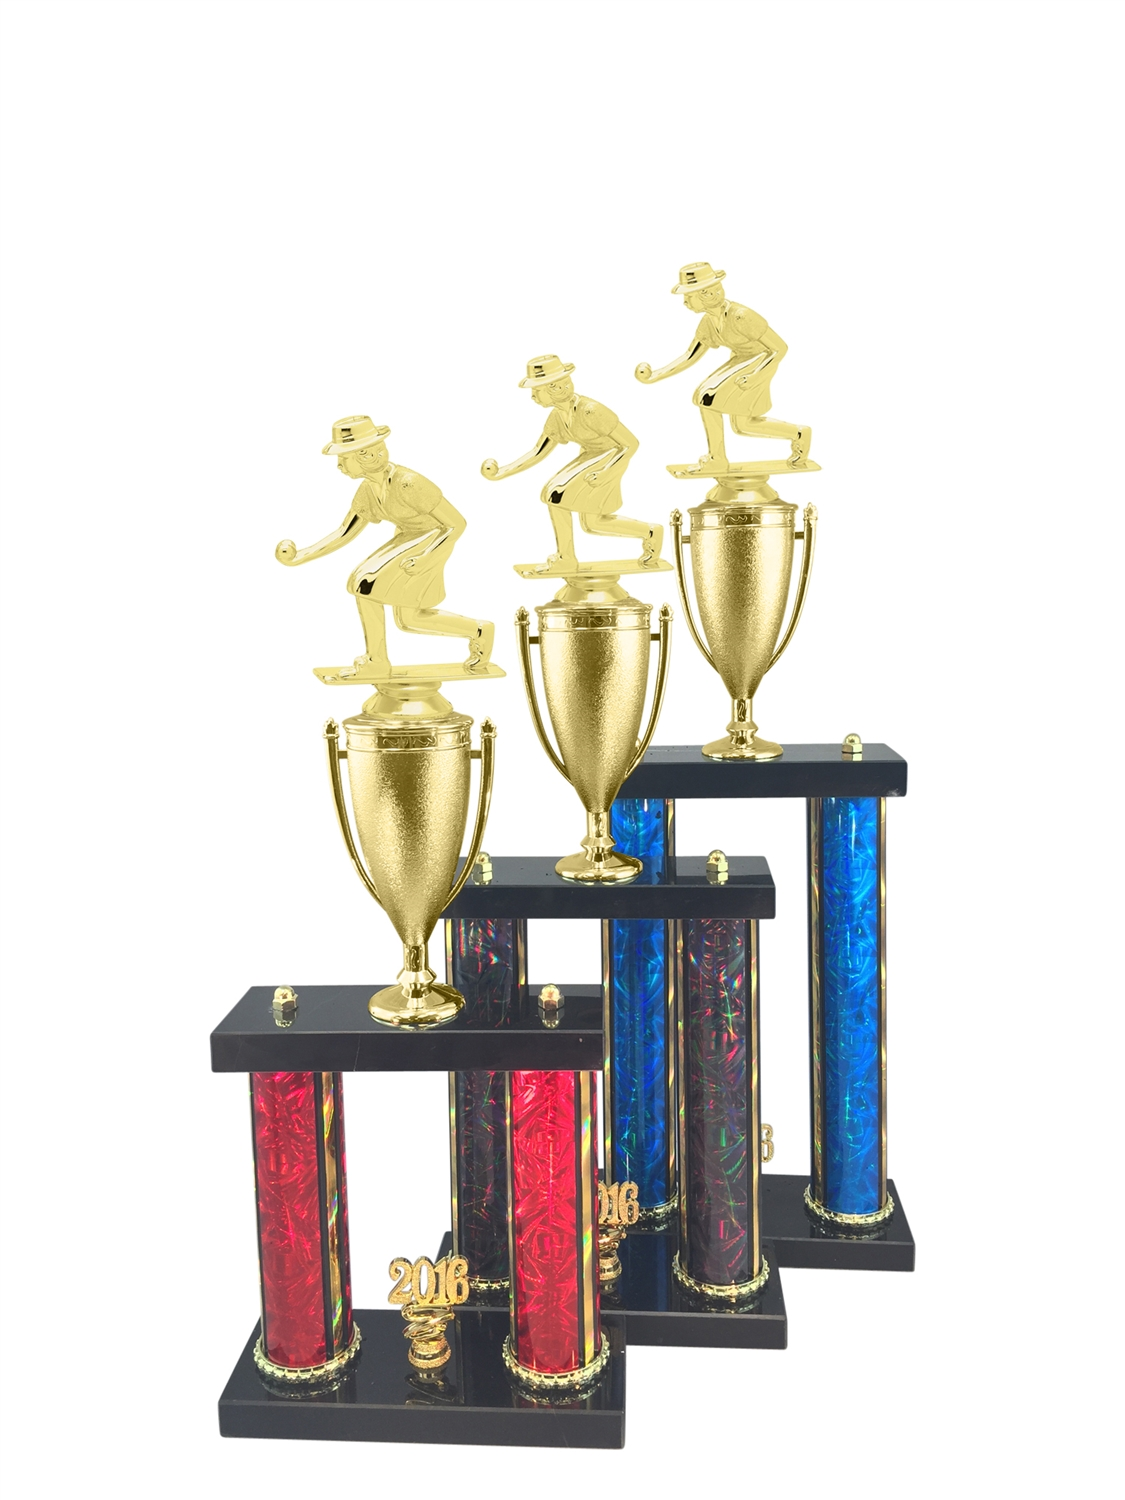 Female Lawn Bowling Trophy Available in 11 Color & 3 Size Options